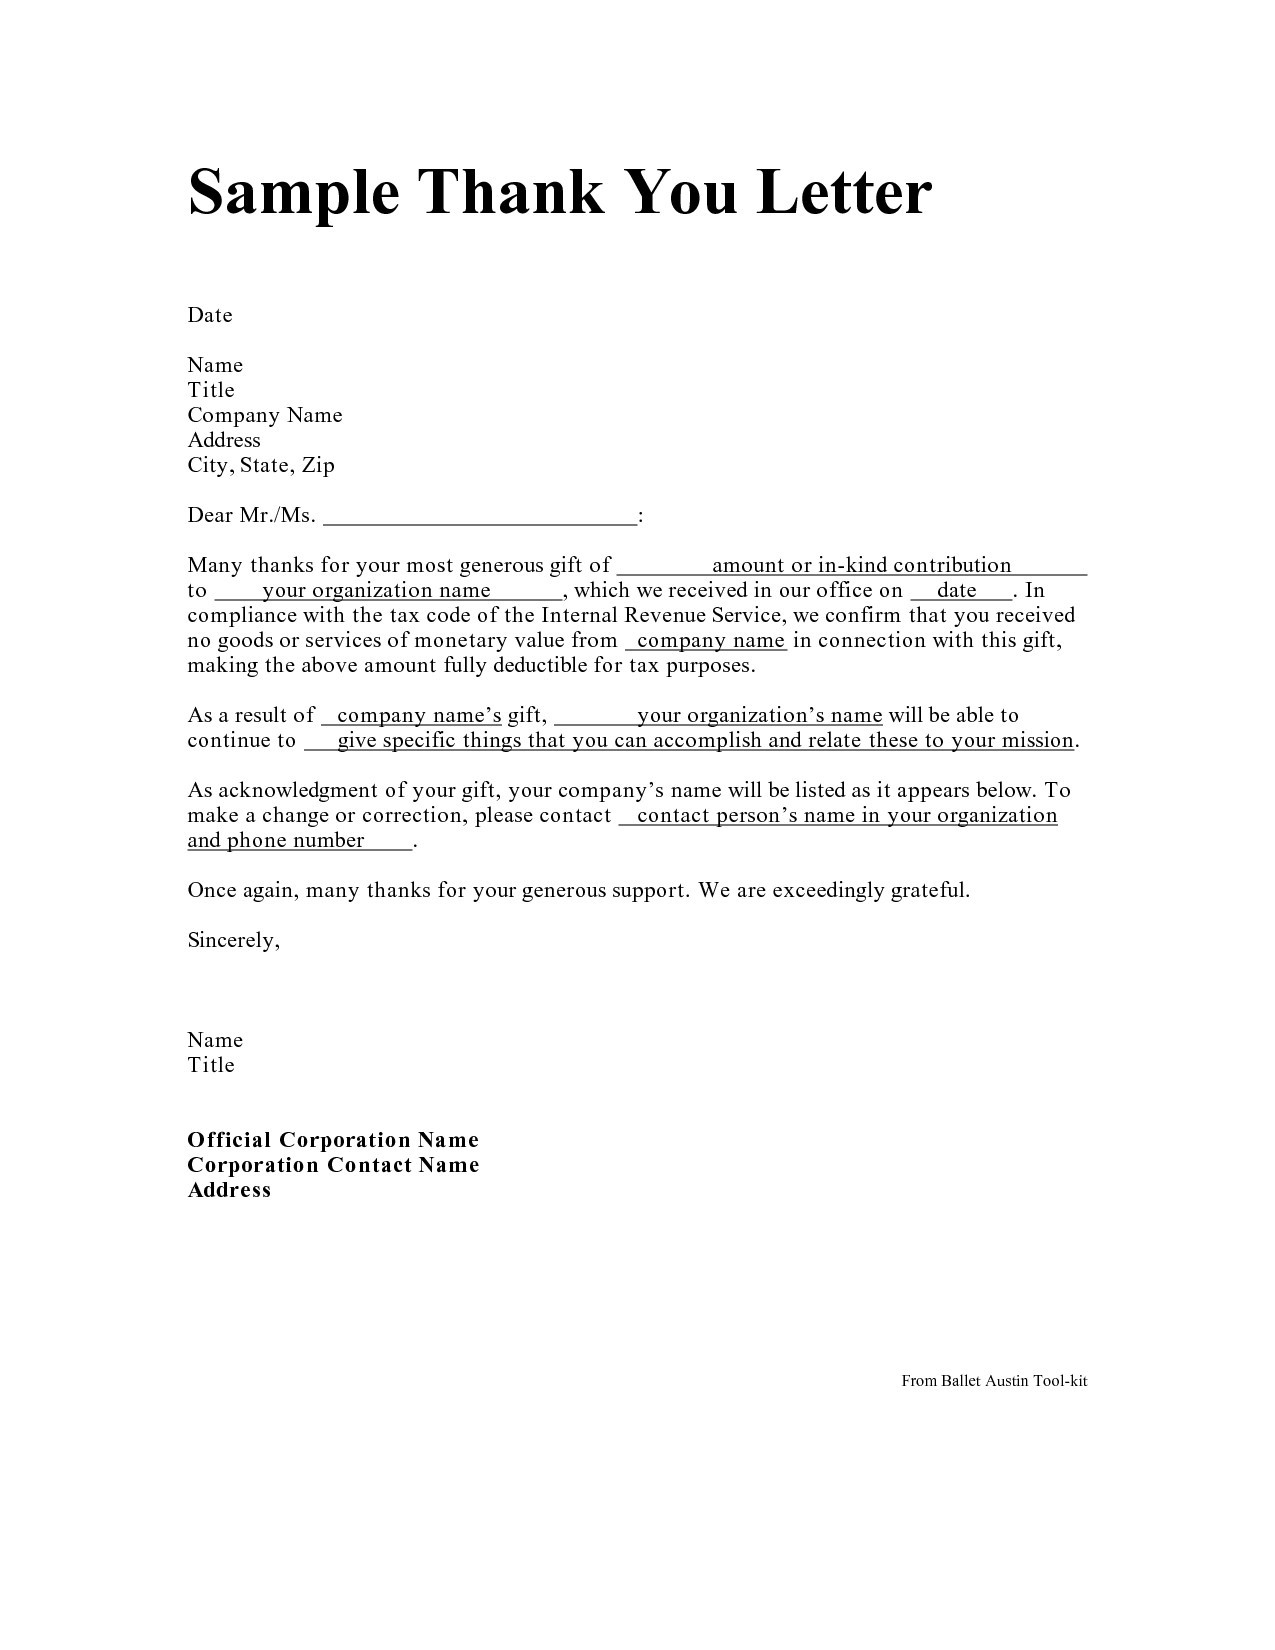 Non Conformance Letter Template - Letter Conformance Template